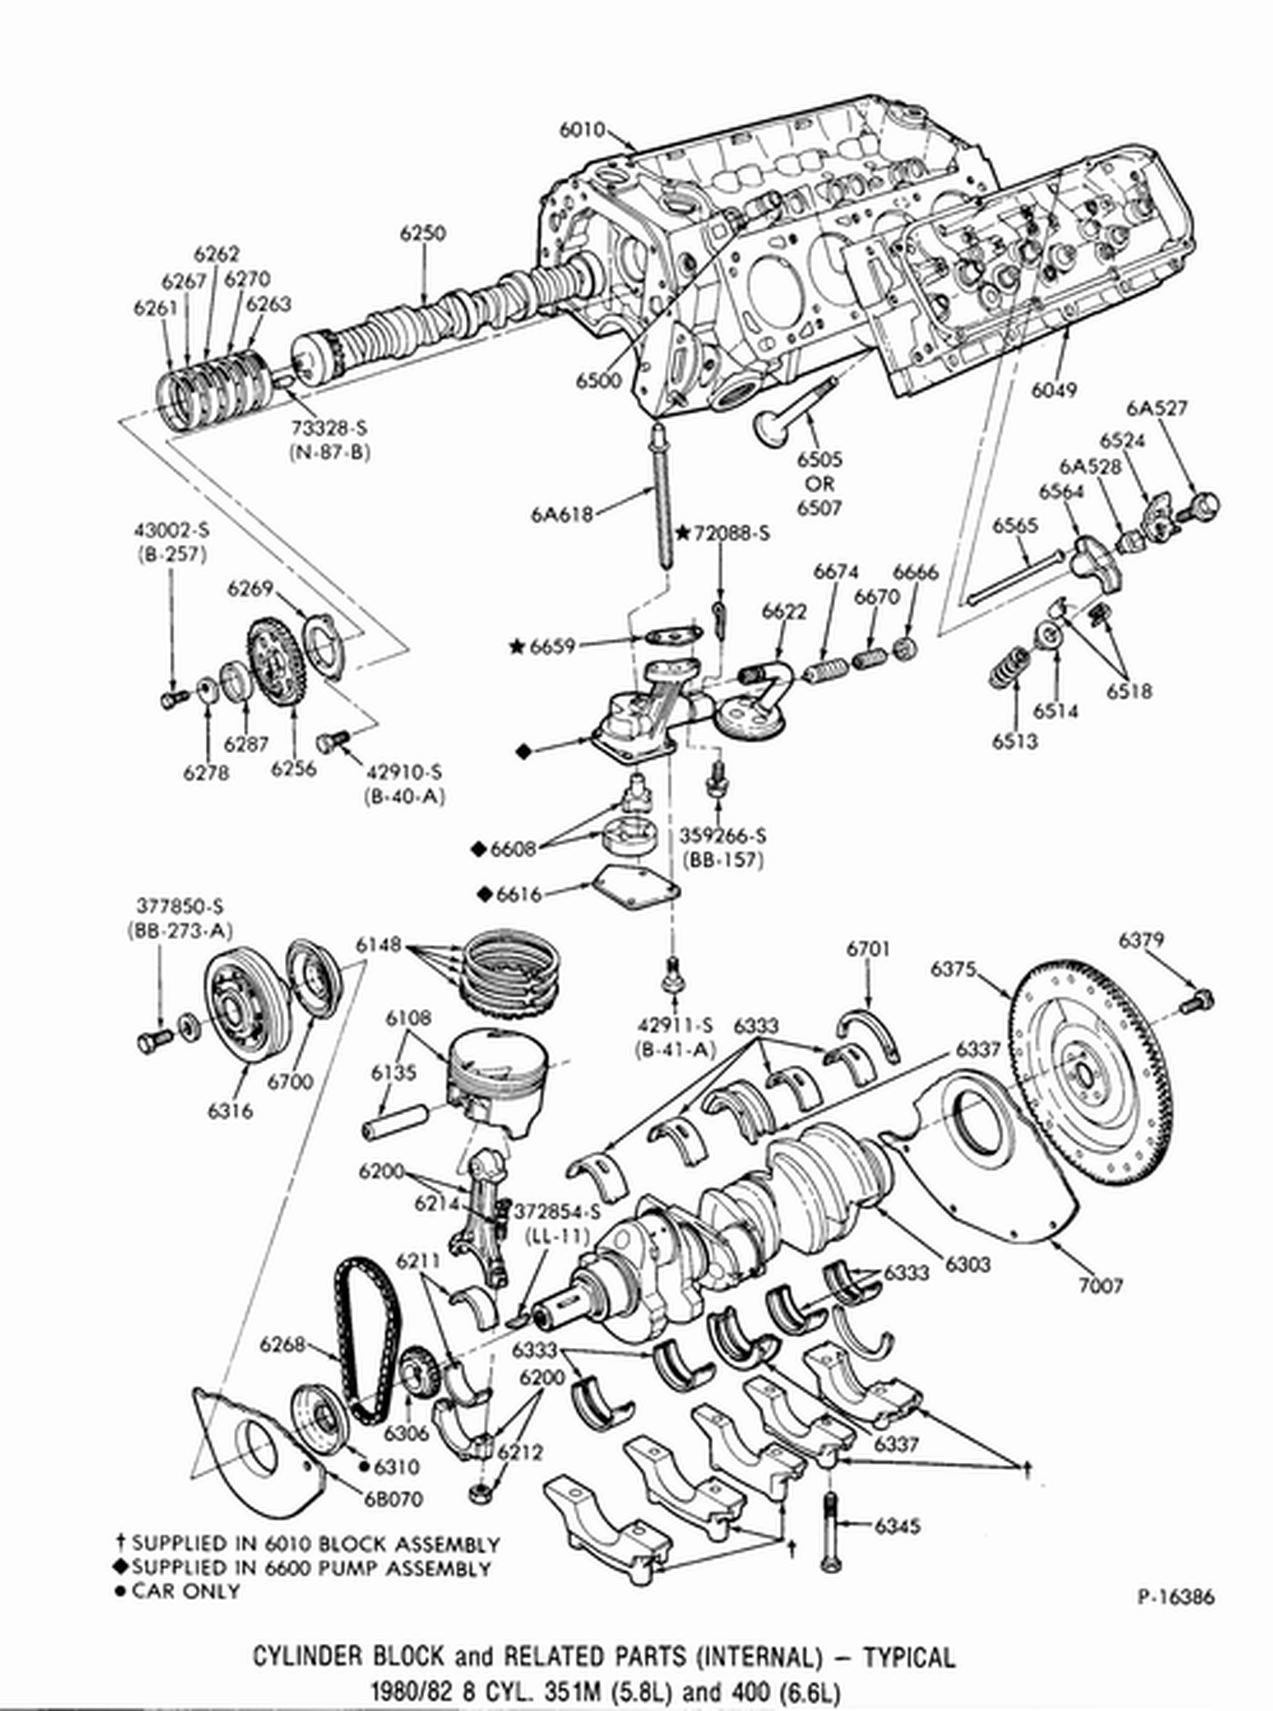 ford 400 engine diagram wiring diagram sheet 1978 ford 400 engine diagram [ 1273 x 1711 Pixel ]